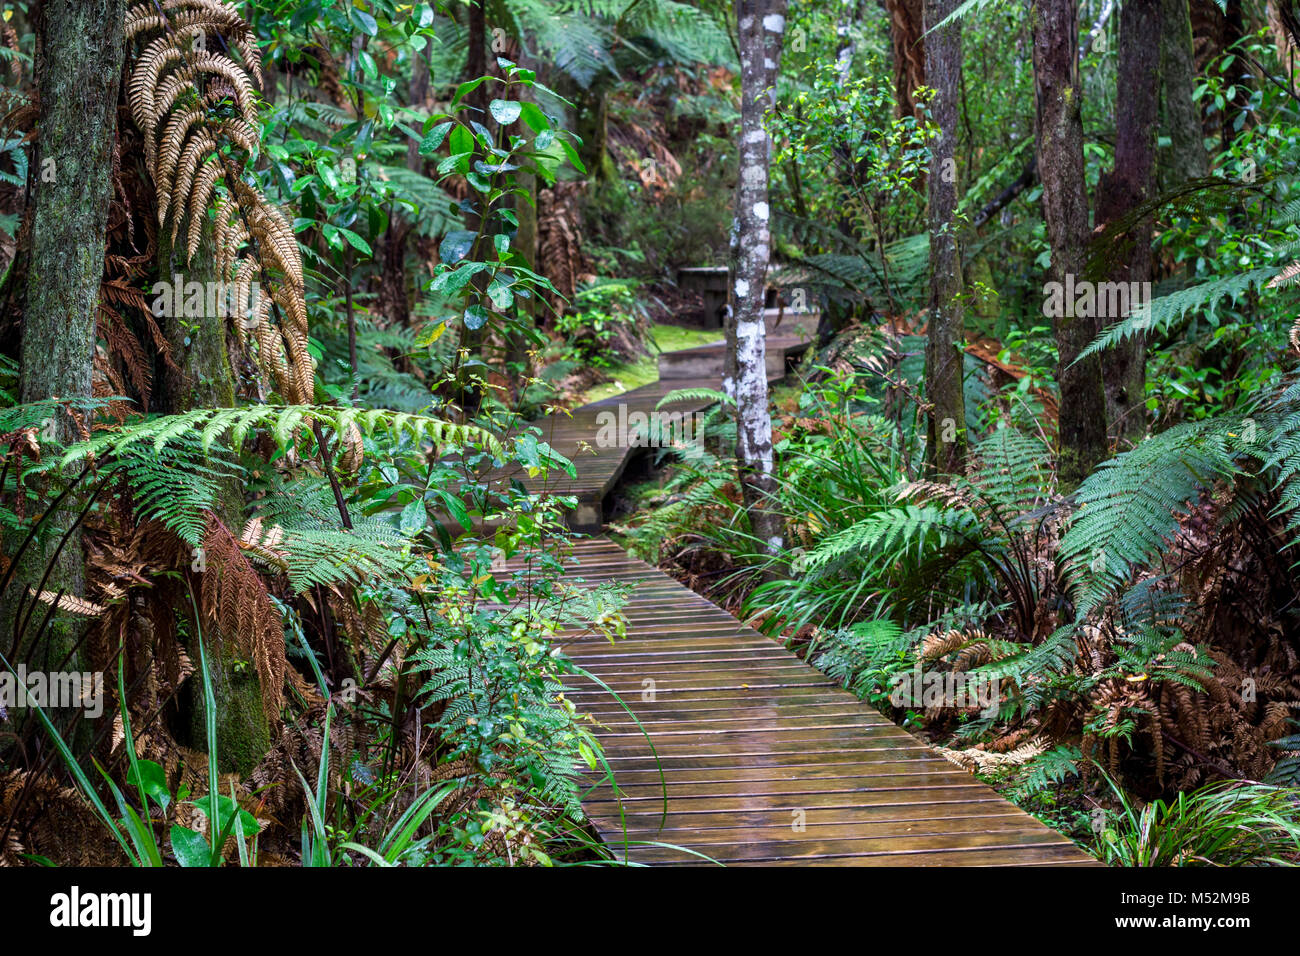 Magical forest hiking trail - Stock Image